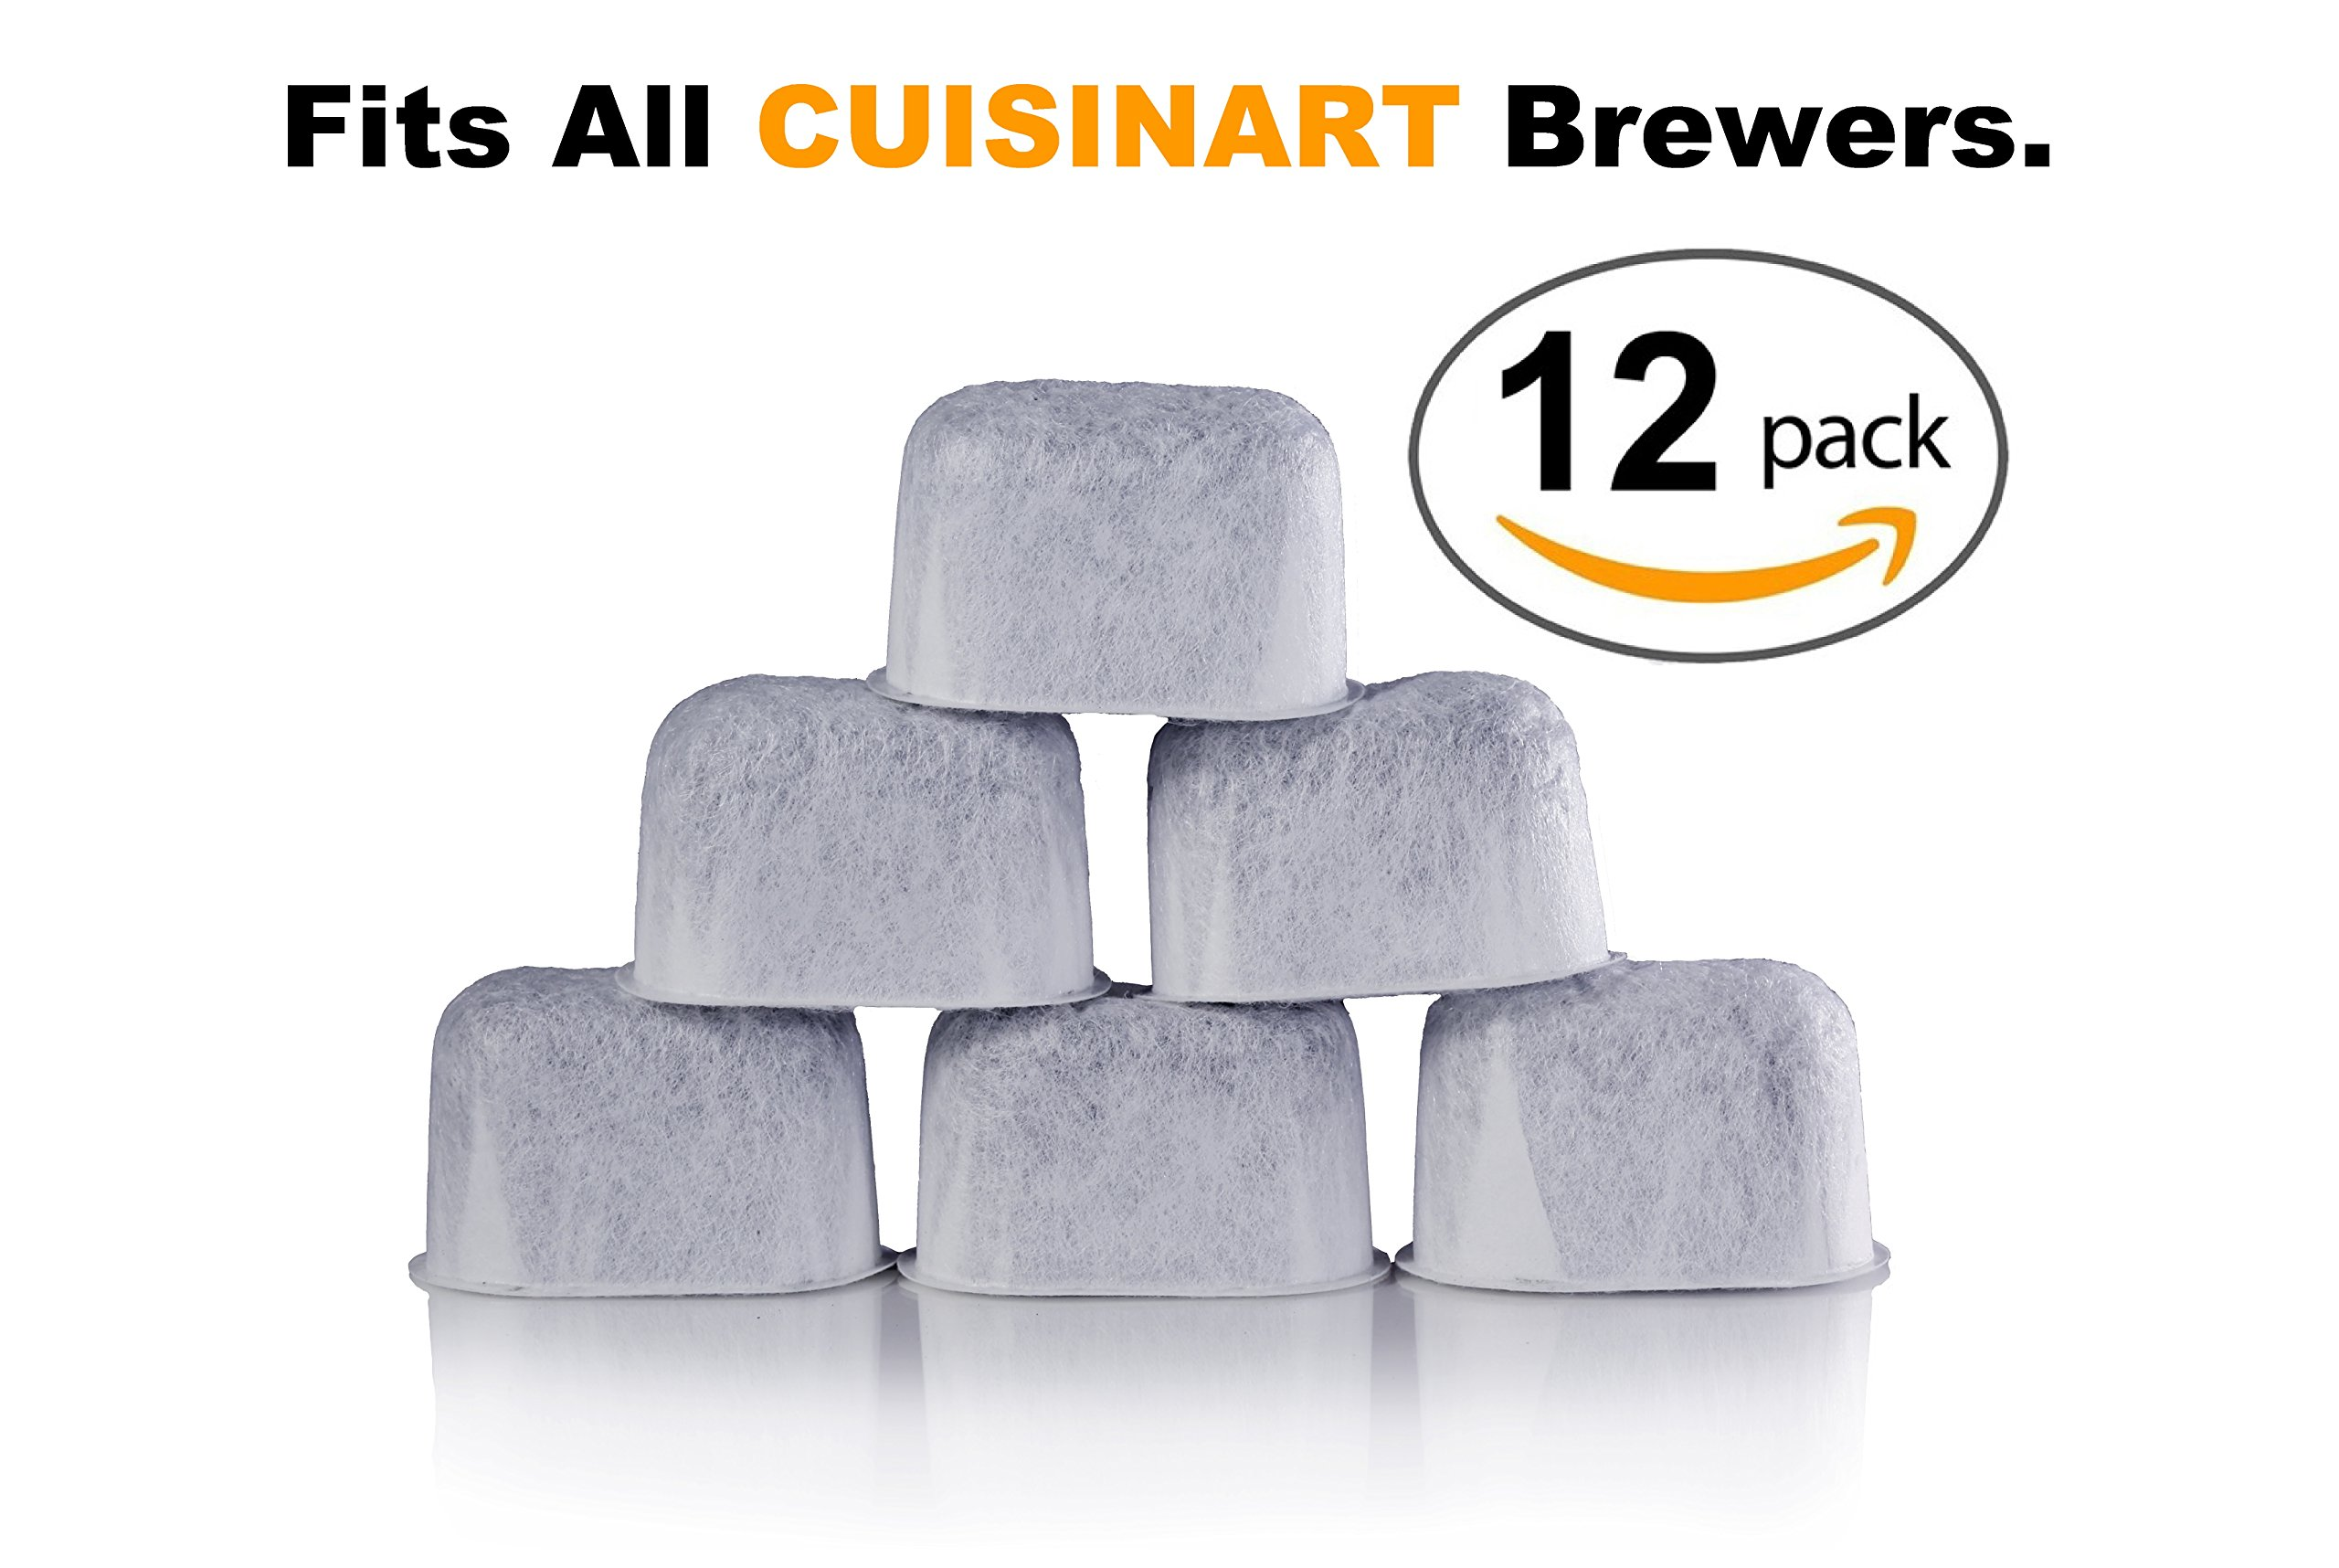 12 Pack Of Cuisinart Compatible Replacement Ku0026J Charcoal Water Filters For  Coffee Makers   Fits All Cuisinart Coffee Makers